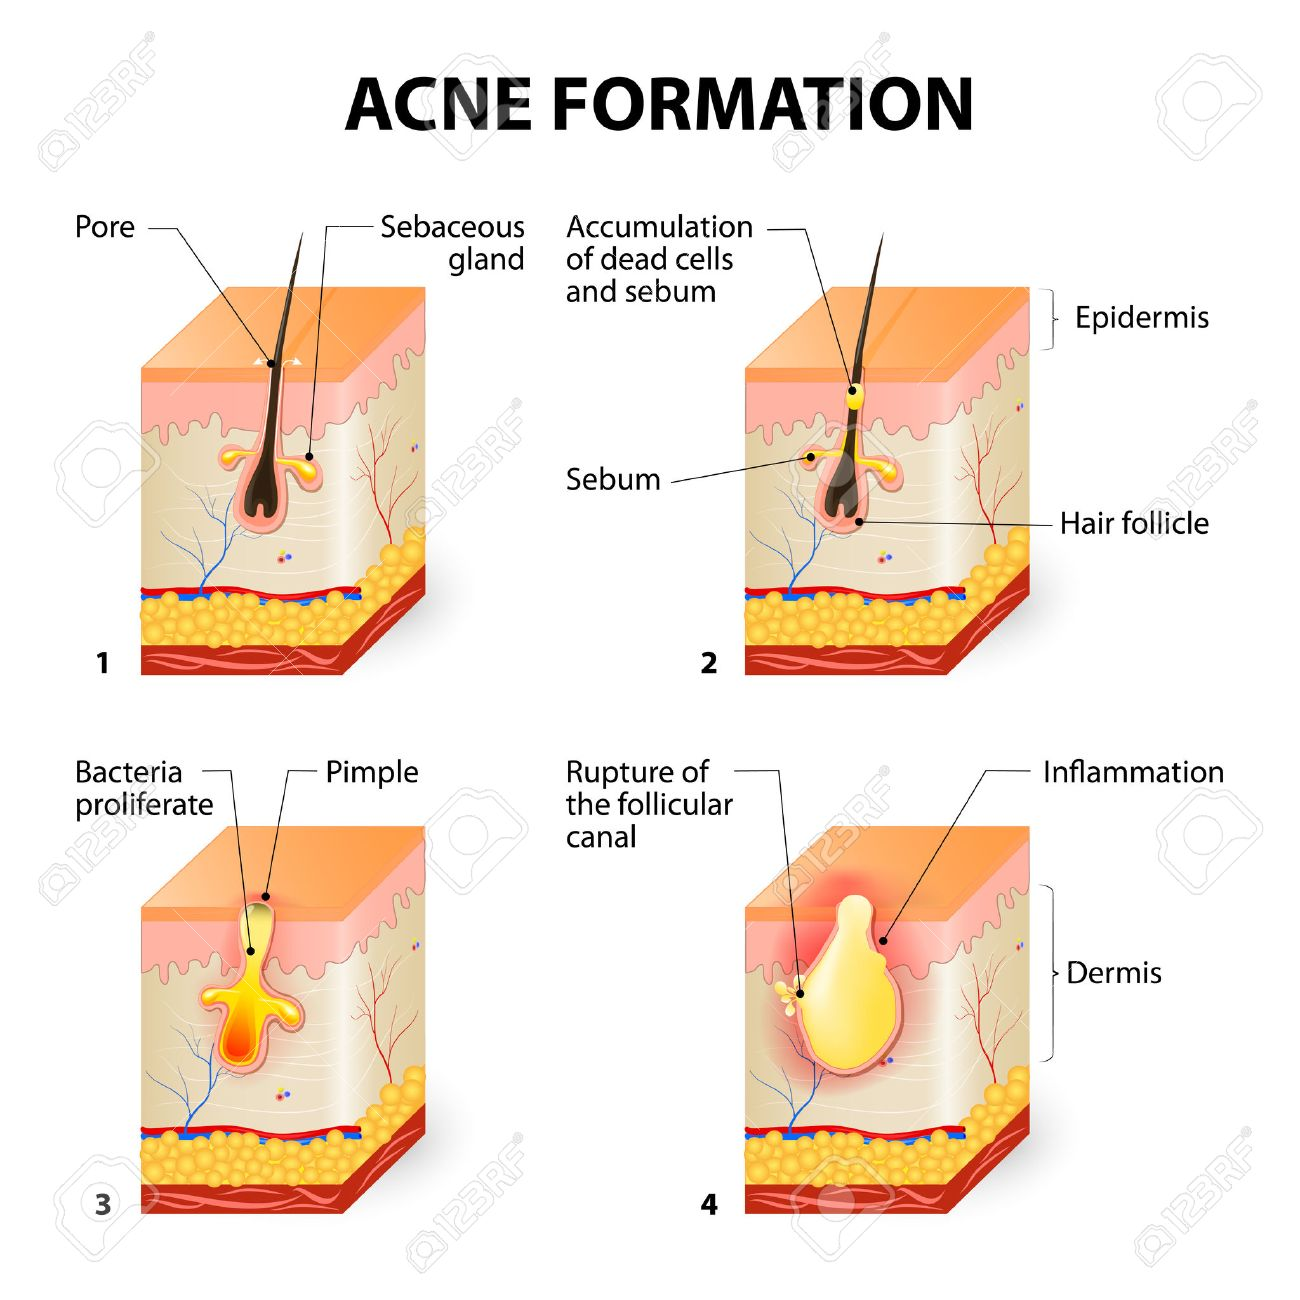 Formation of skin acne or pimple  The sebum in the clogged pore